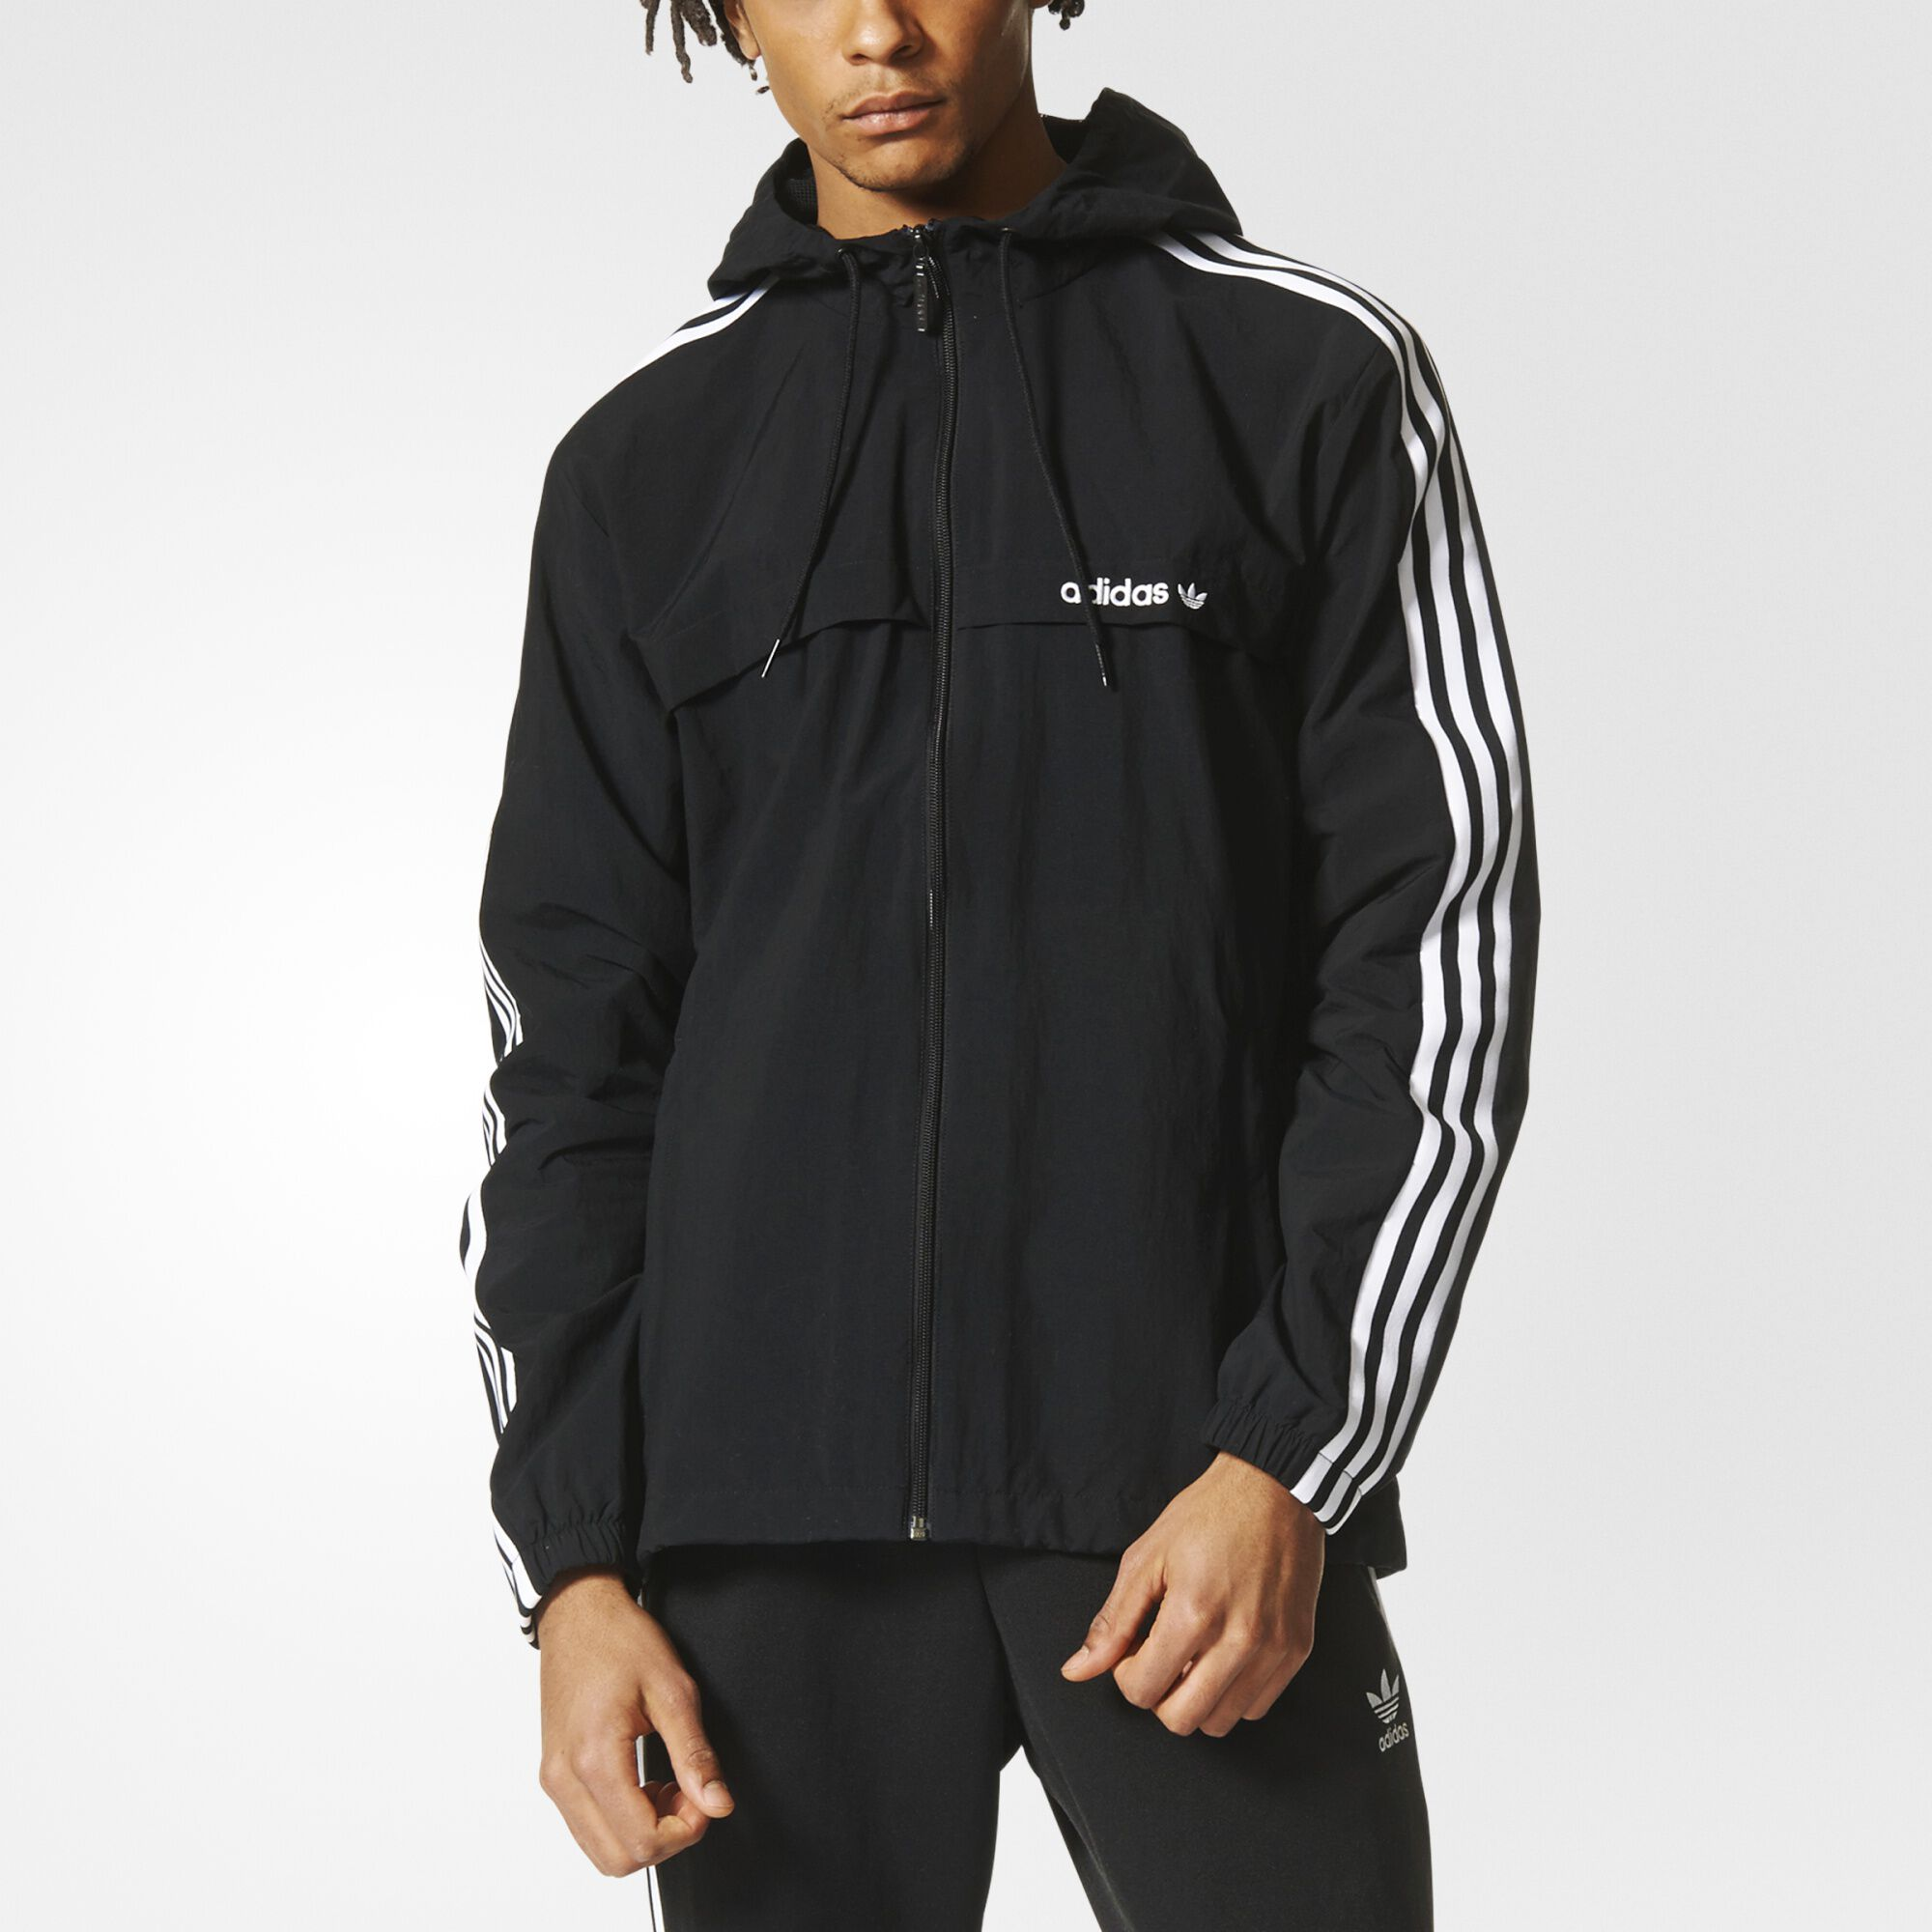 adidas black and blue jacket